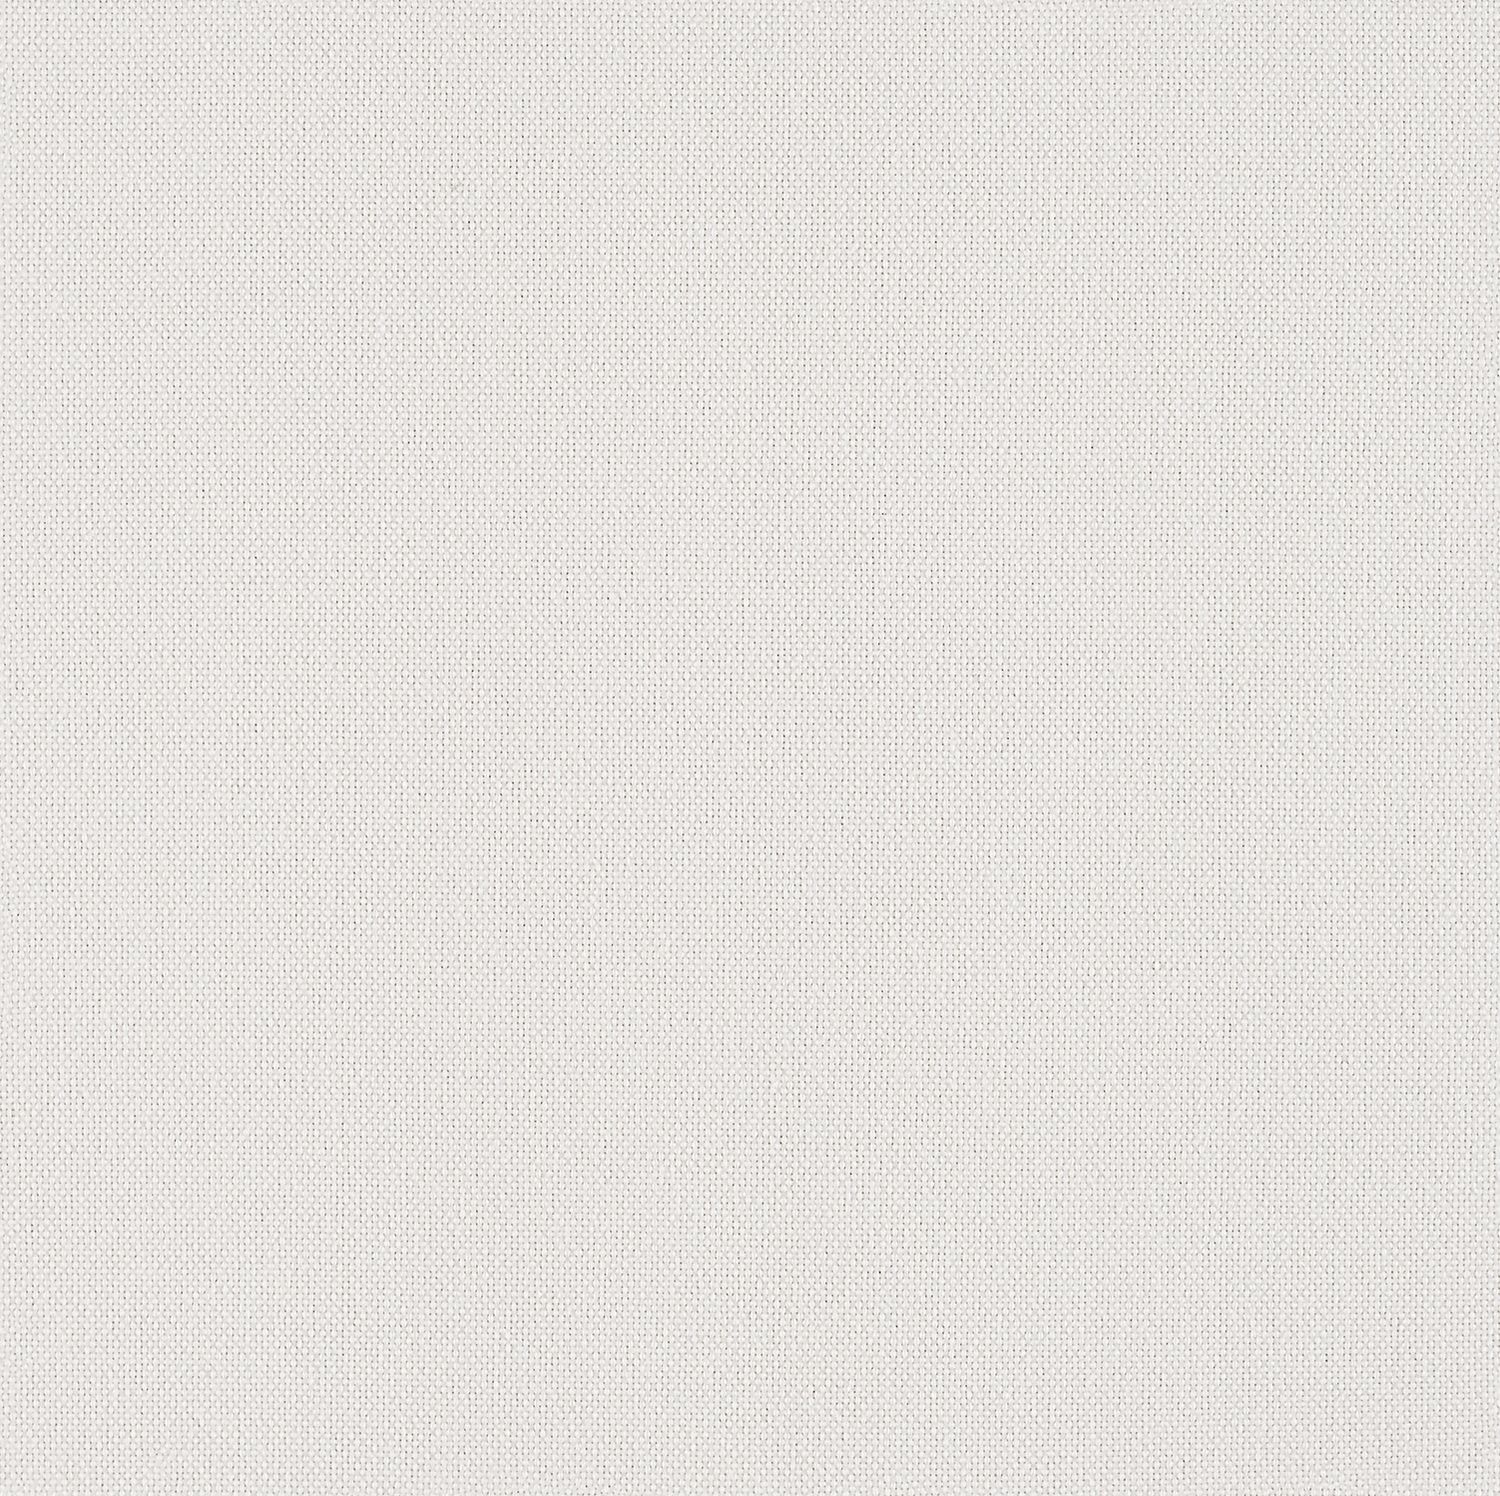 Backdrop - White Out - 1027 - 01 - Half Yard Tileable Swatches